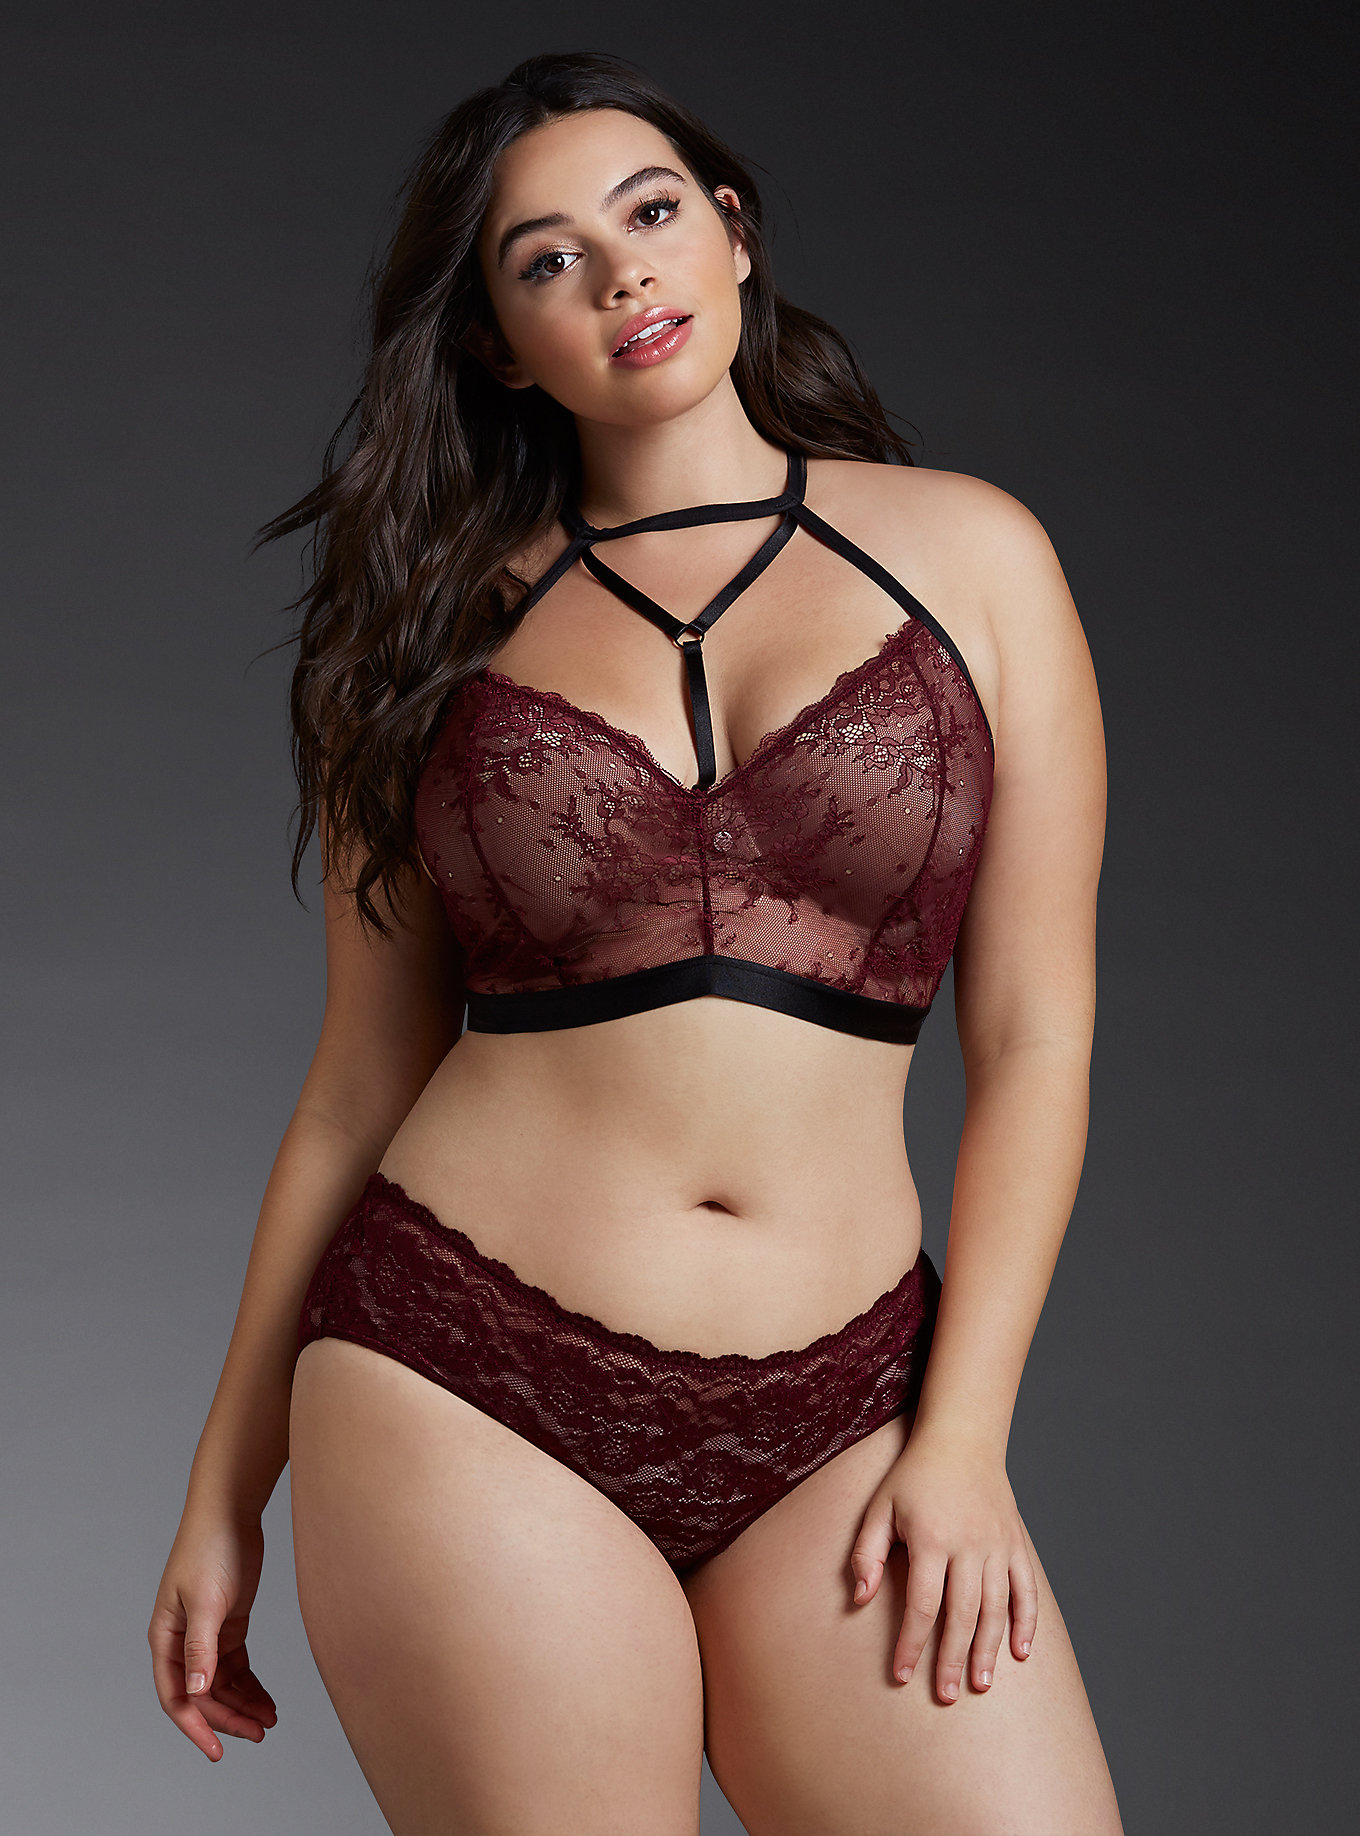 unwrap me under the tree part 1: lingerie edition with torrid